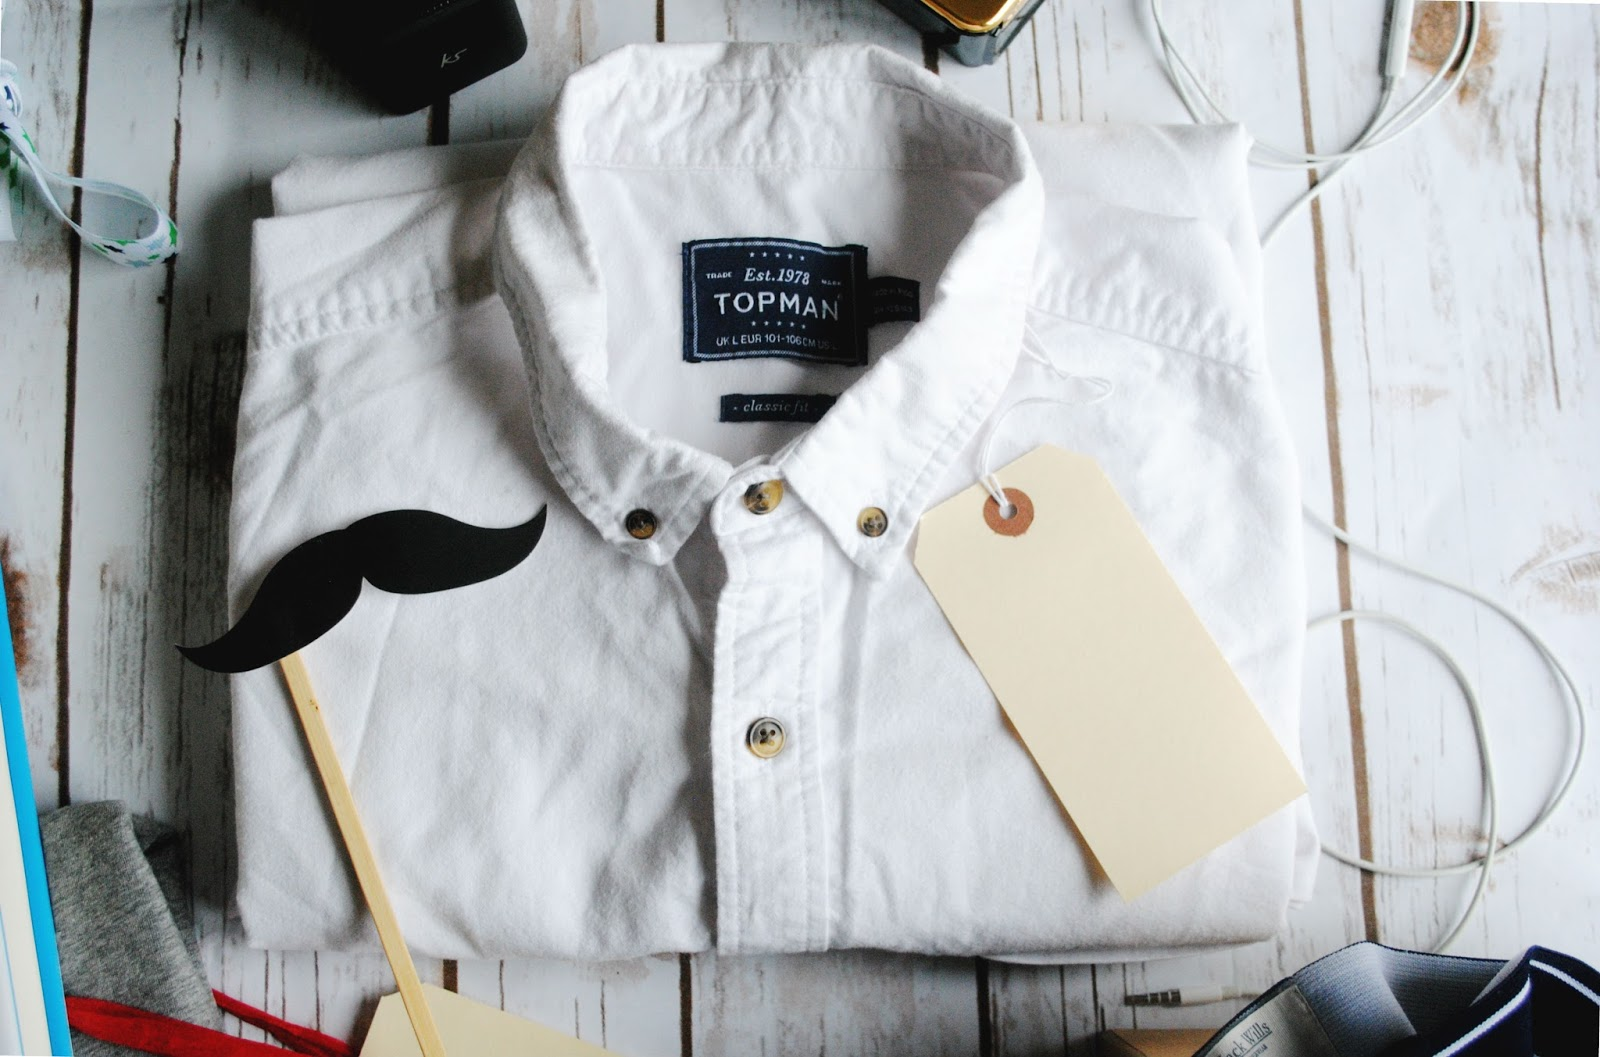 topman shirt white mustache apple headphones